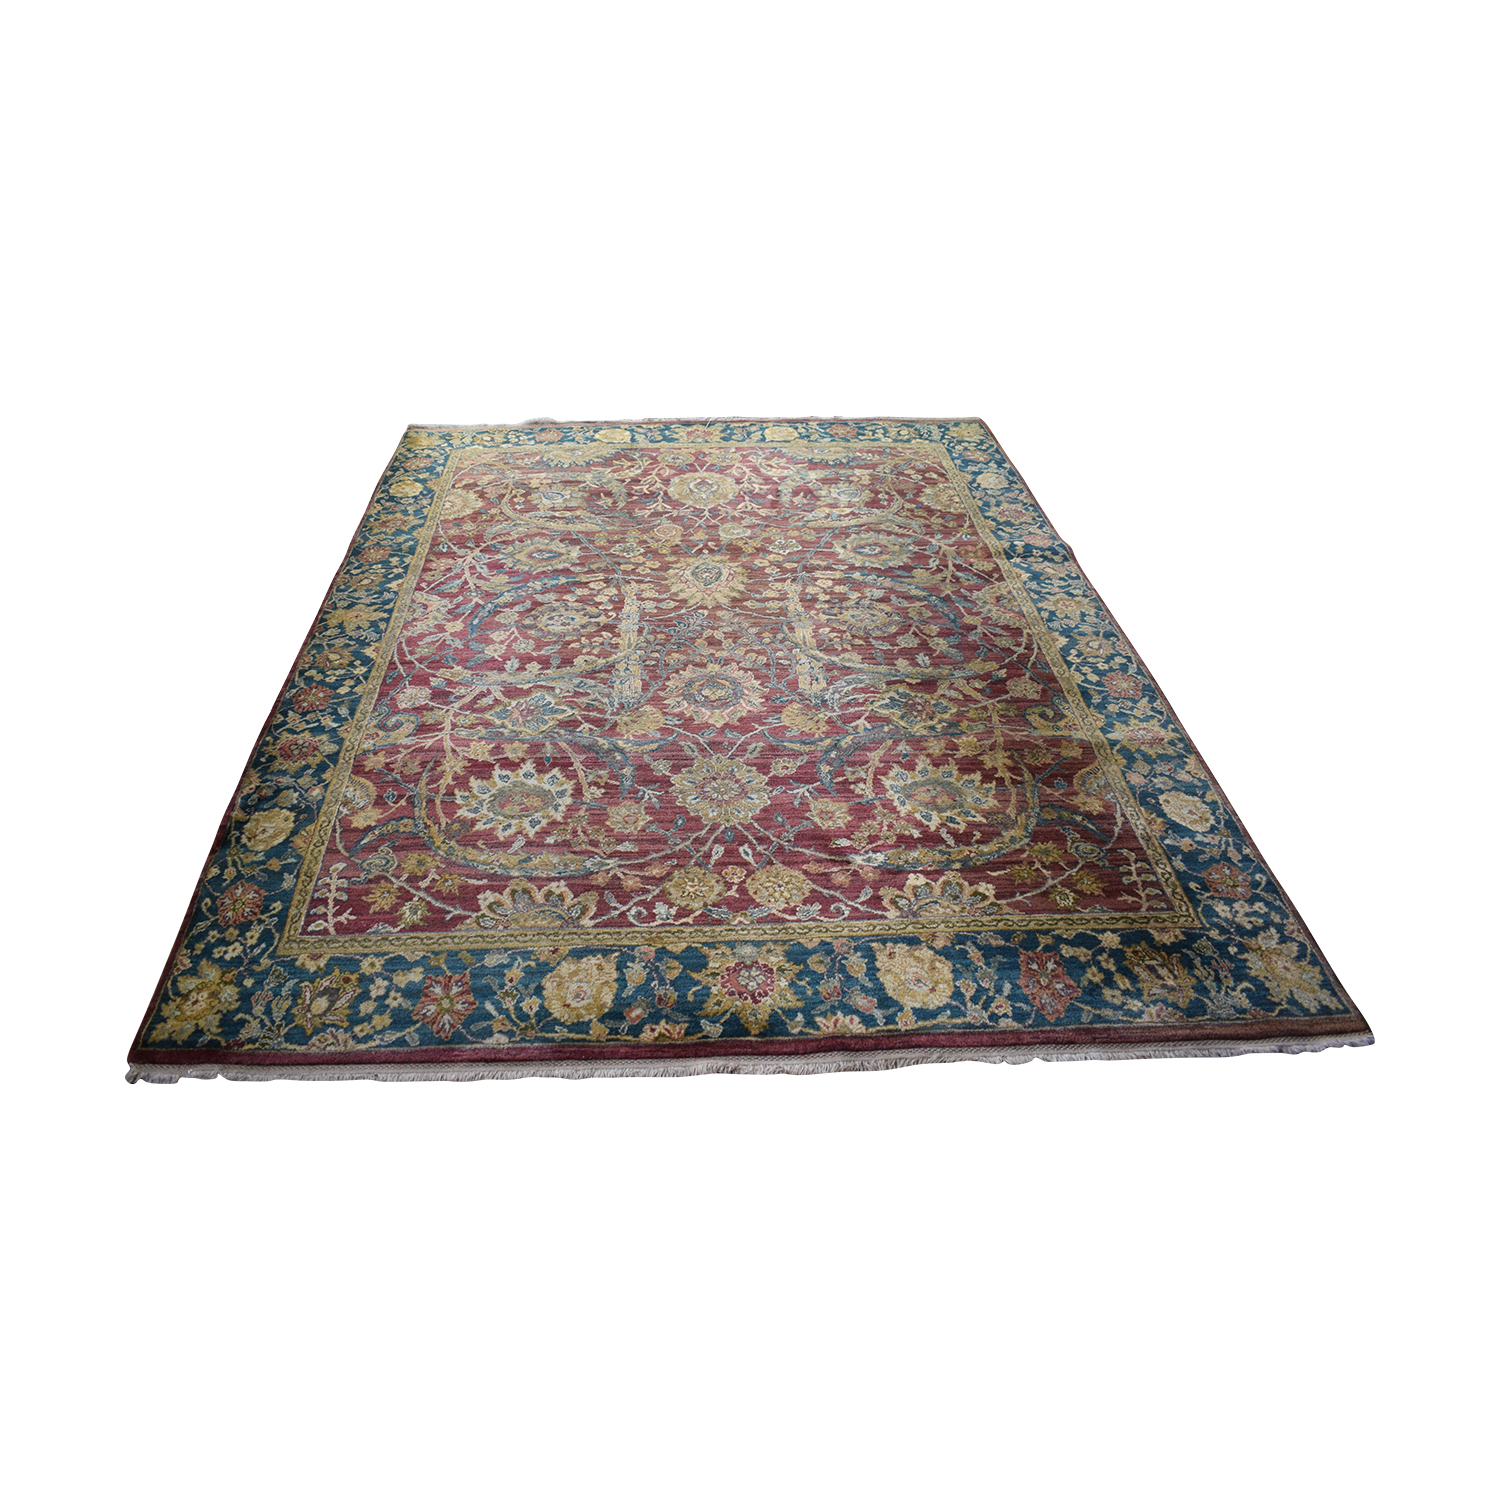 shop ABC Carpet & Home ABC Carpet & Home Rug online